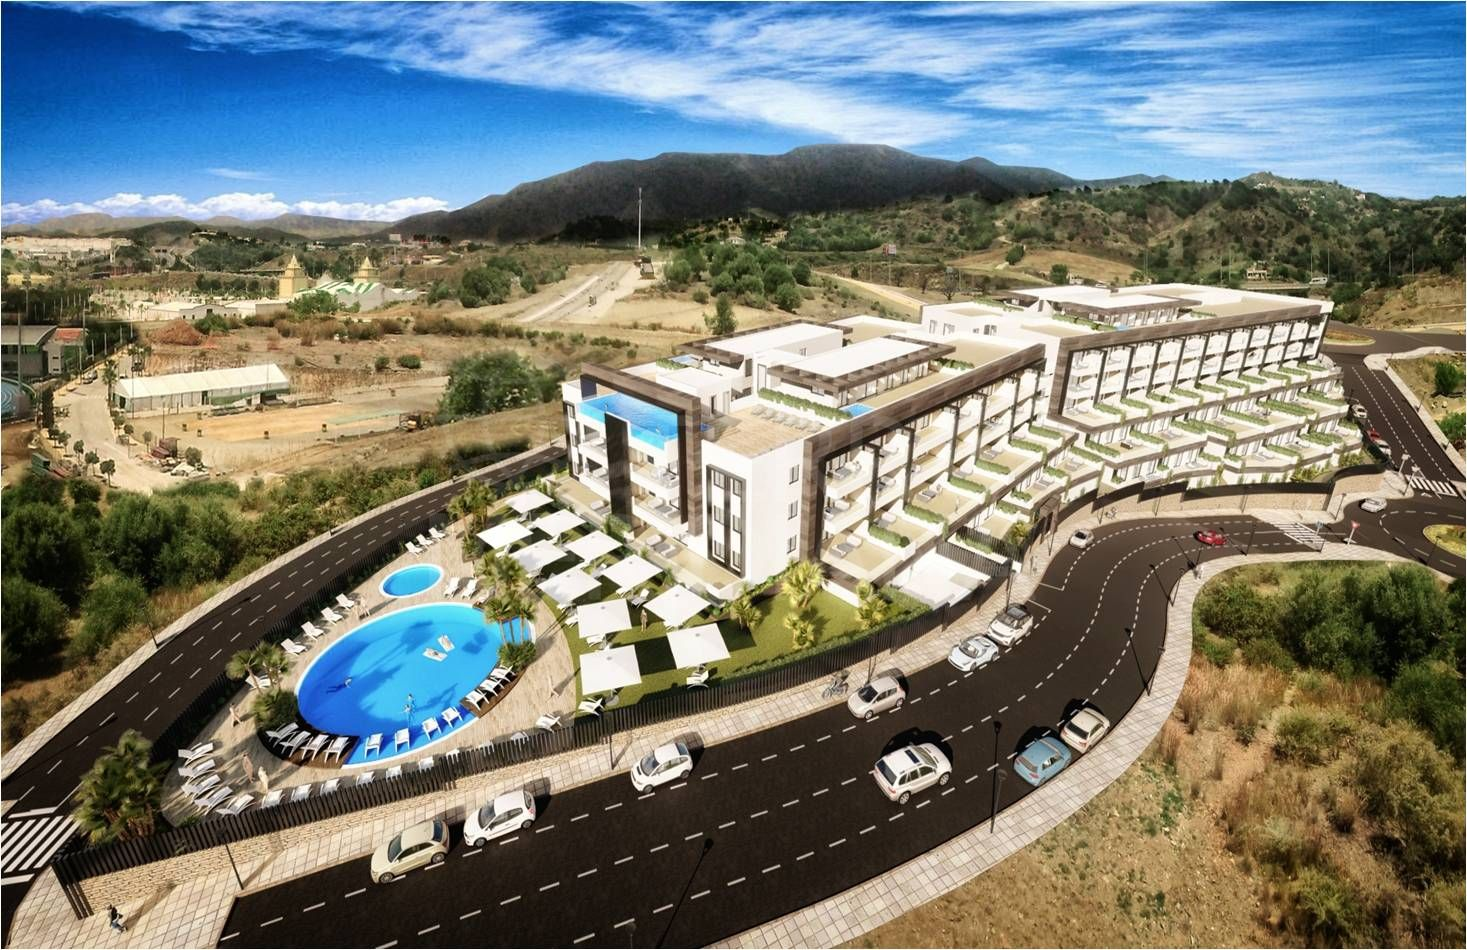 Residencial Alcudia, Estepona - New development comprised of 140 apartments located in a prime area in central Estepona